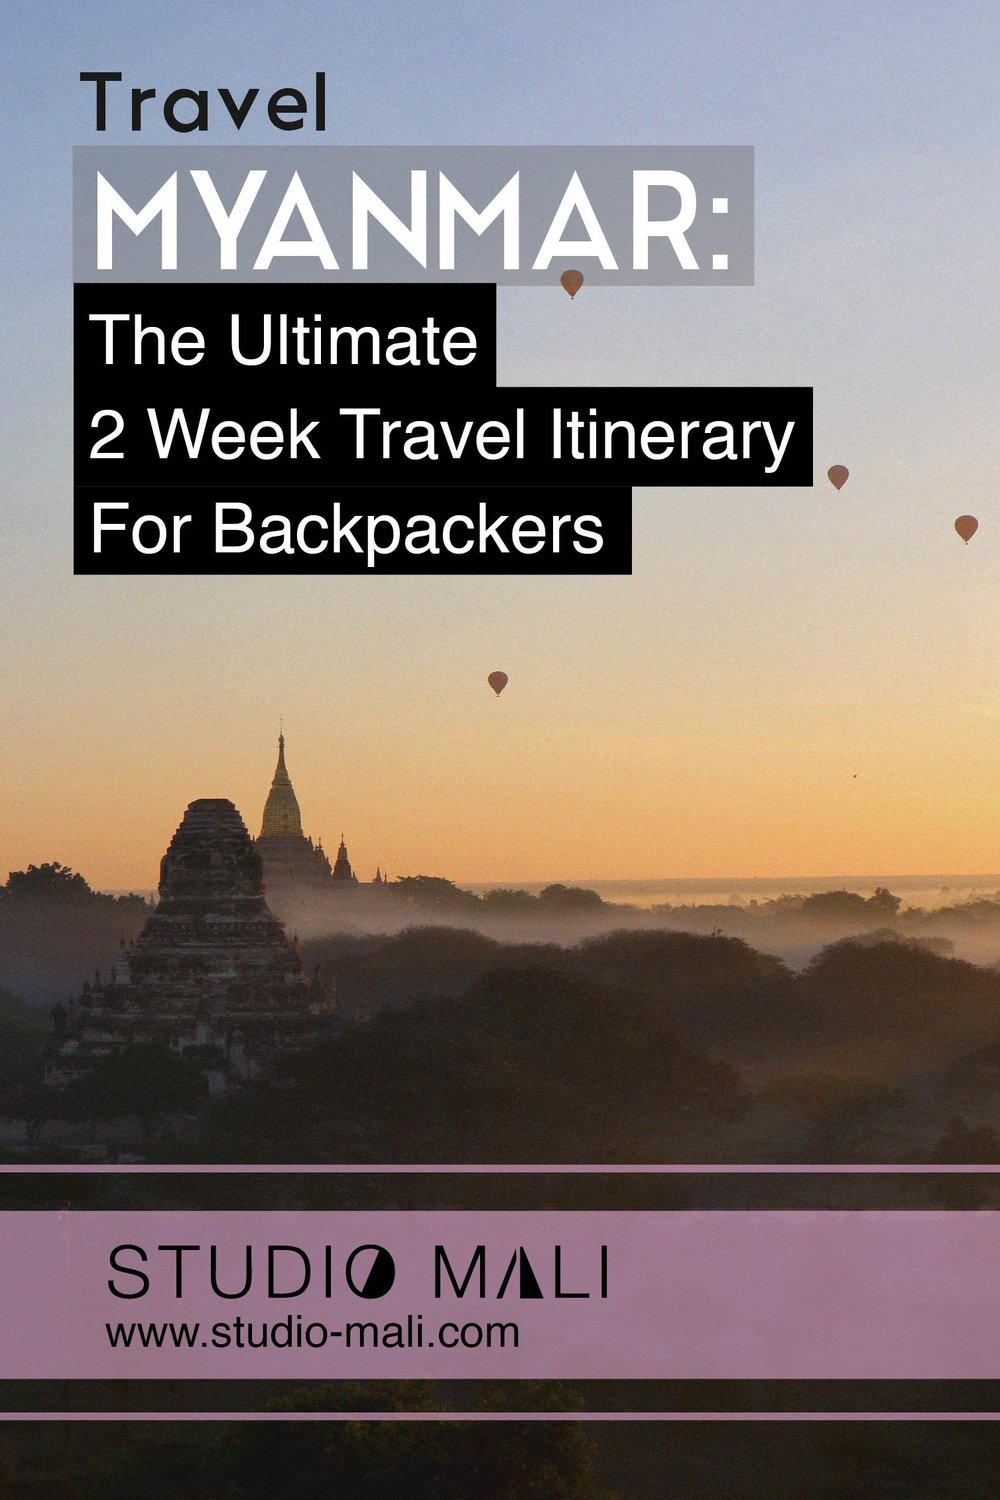 Myanmar - The Ultimate 2 Week Travel Itinerary For Backpackers, by Studio Mali.jpg